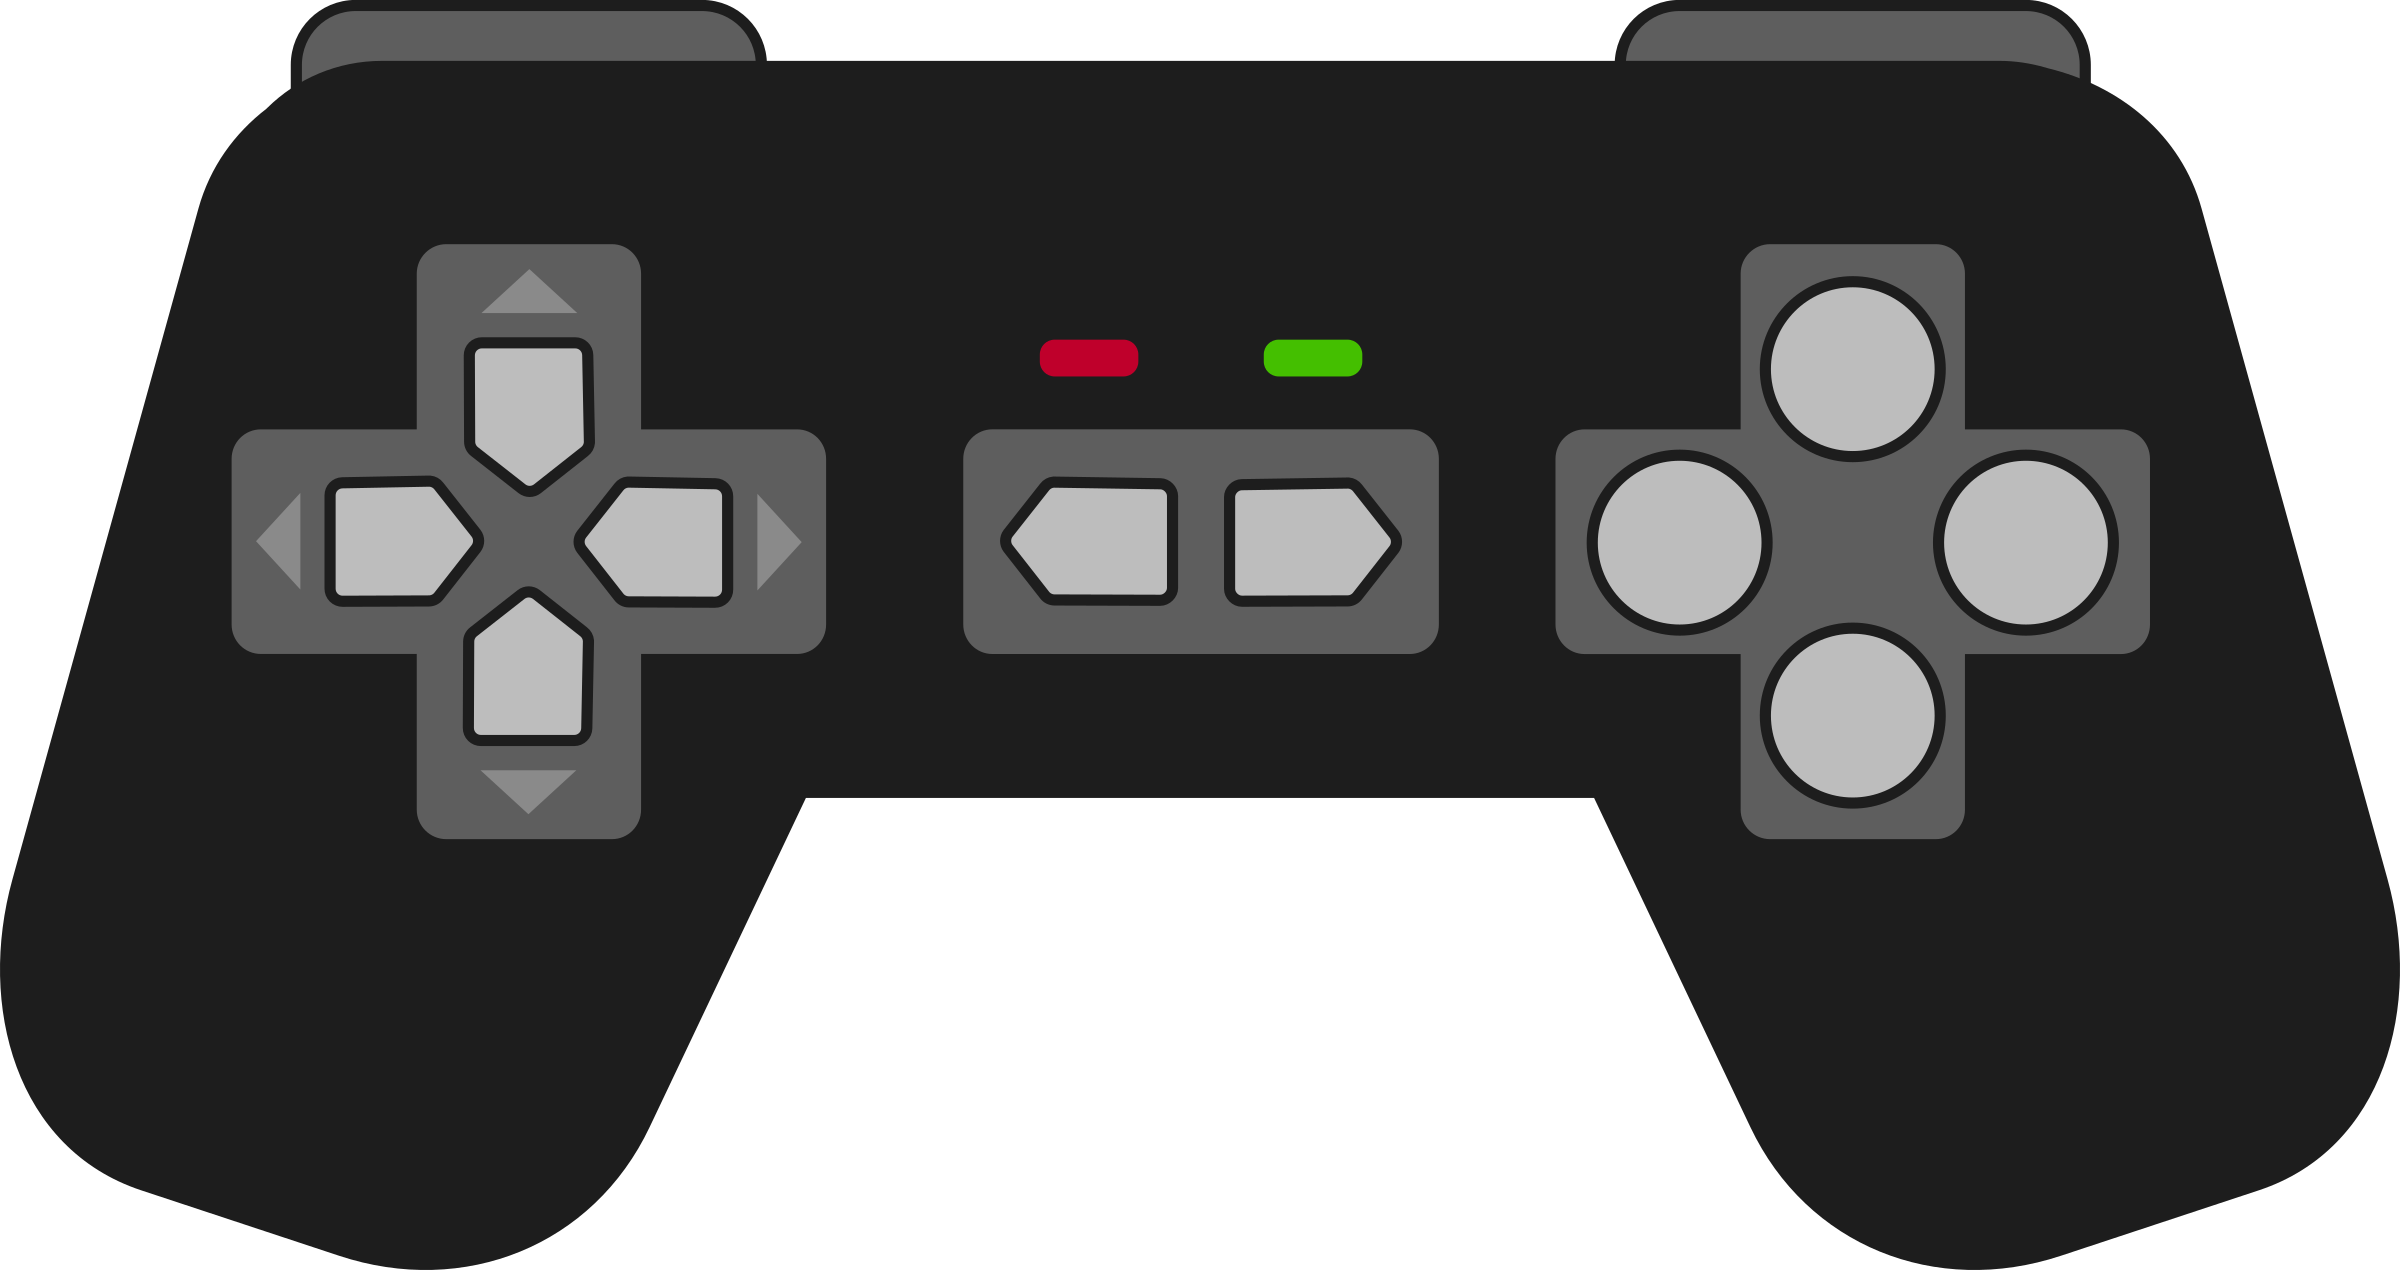 Gamepad Black by qubodup